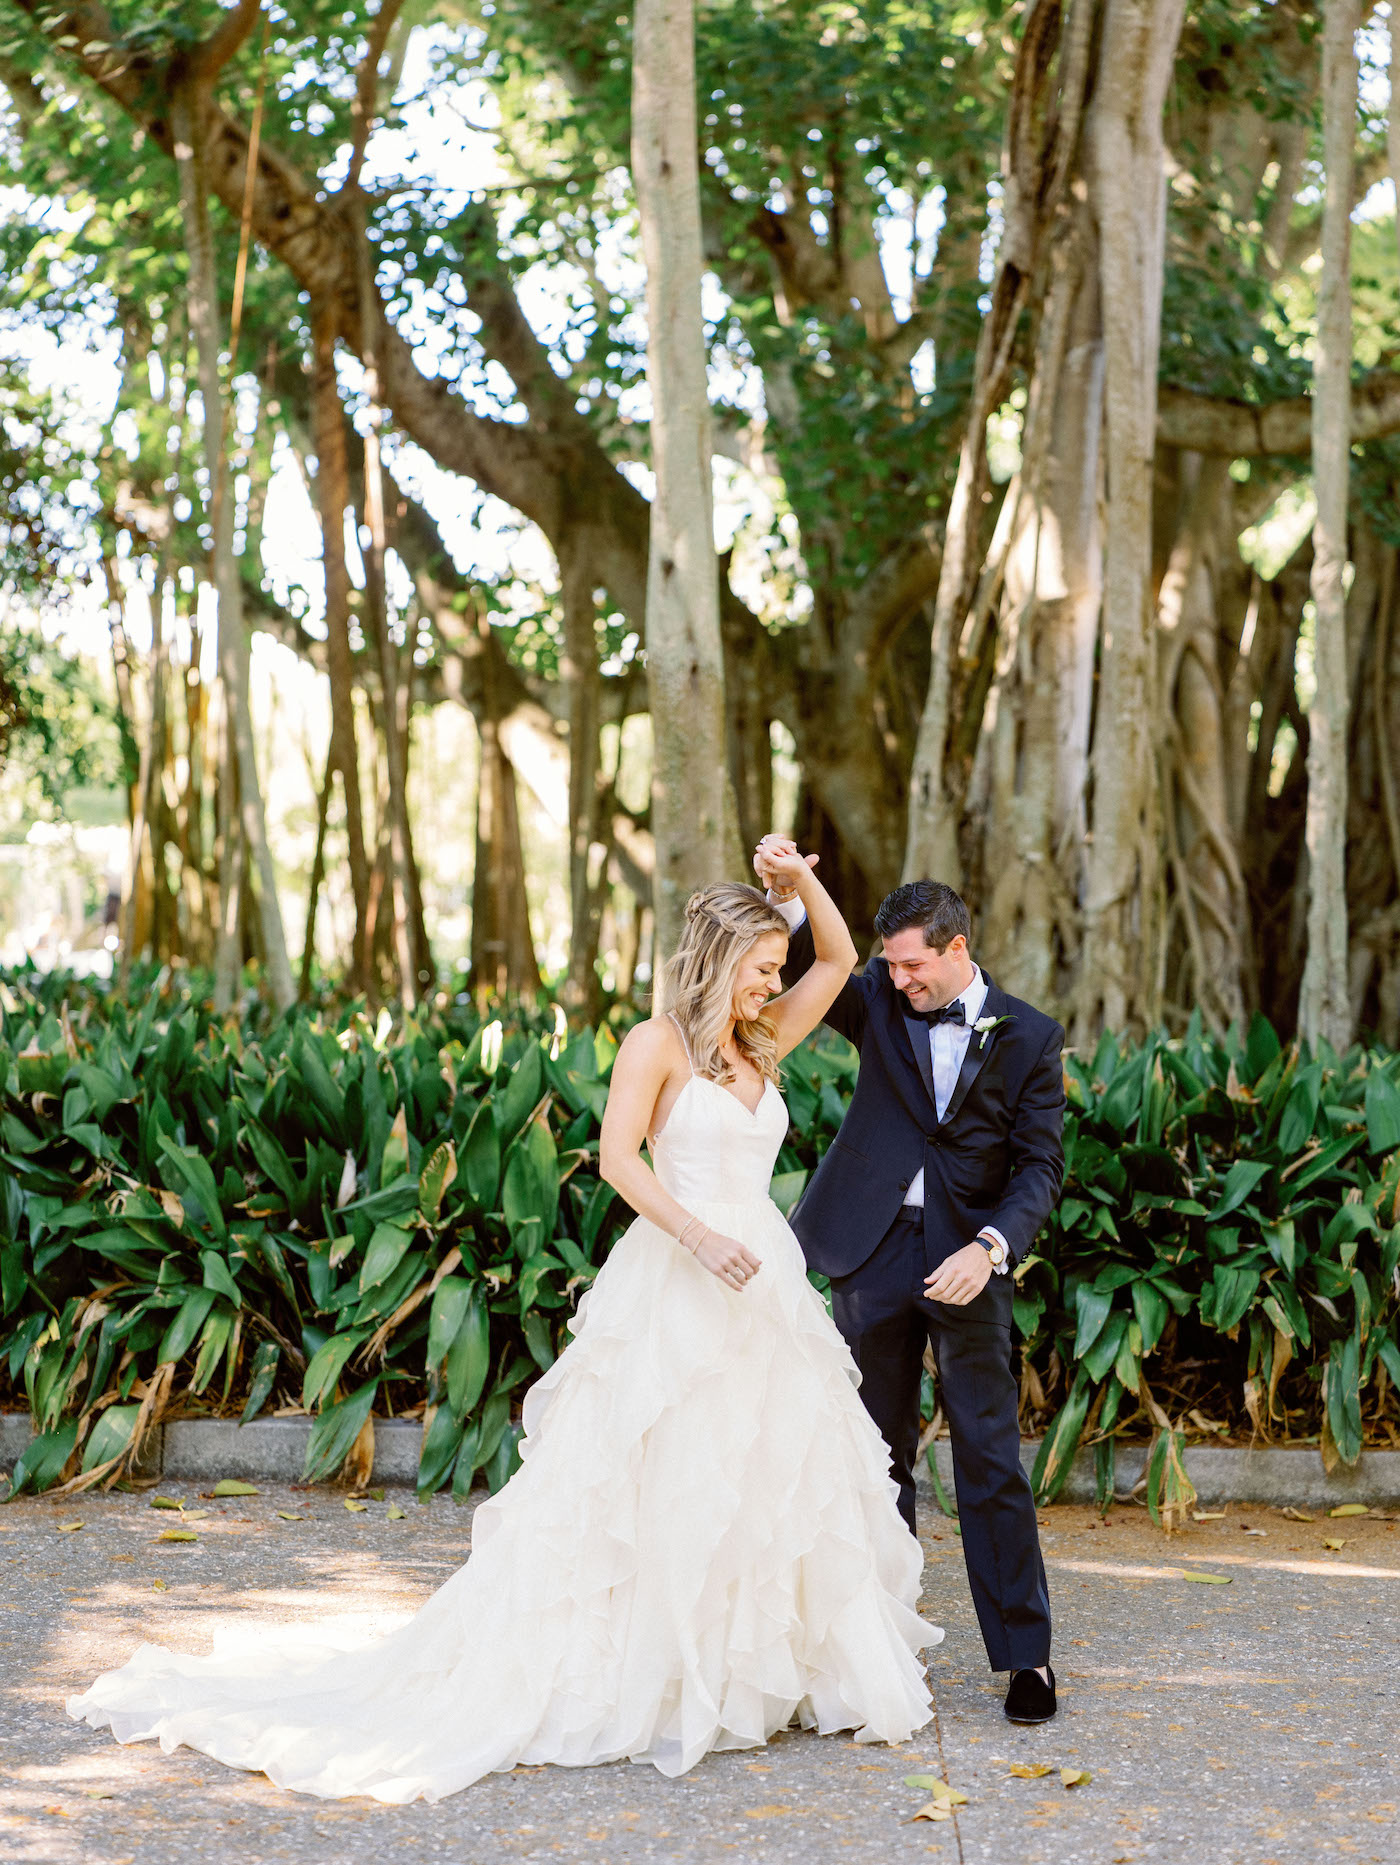 Florida Bride and Groom Dance Outside, Classic Bride and Groom Have Fun Candid Moment Portrait | Sarasota Wedding Planner NK Weddings